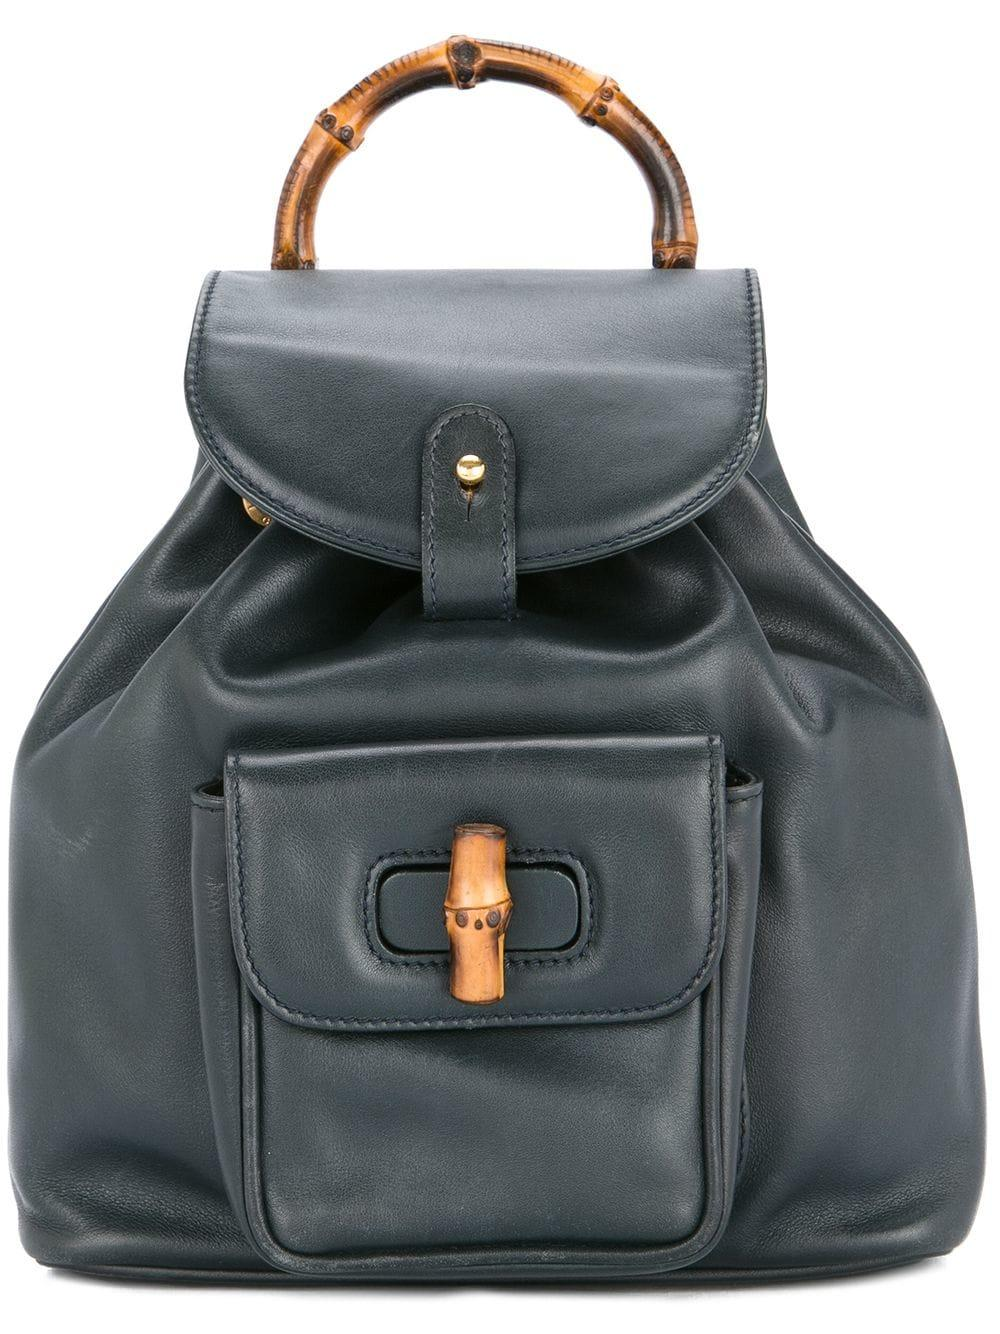 33bbc6f938b24f Gucci Vintage Bamboo Detailing Backpack - Blue | ModeSens